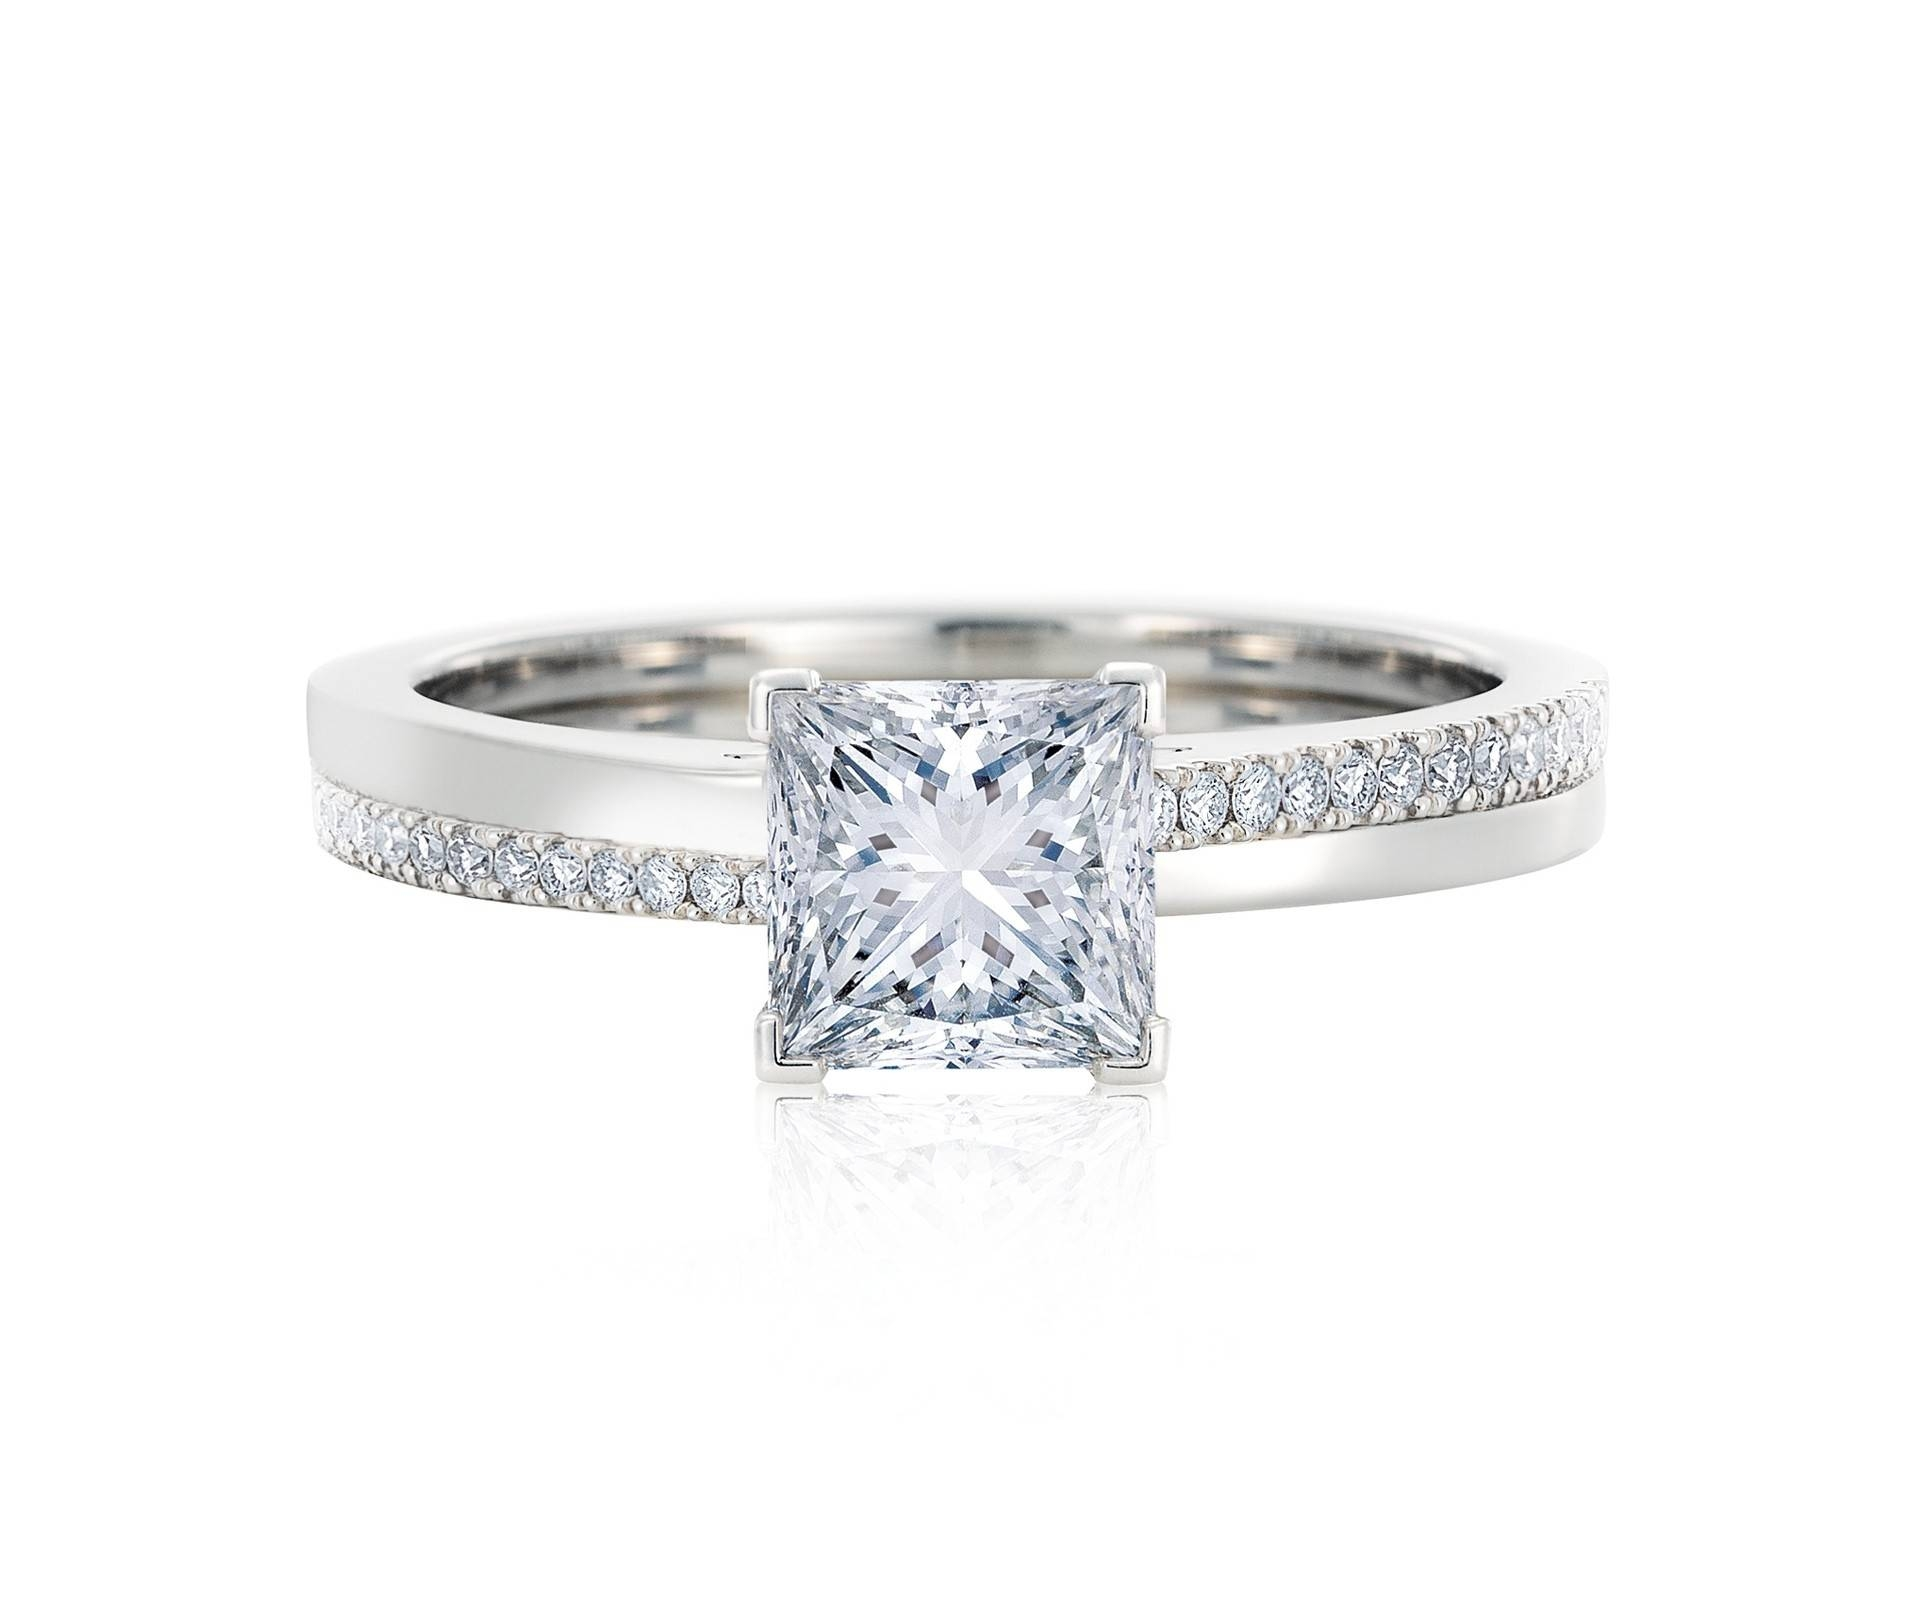 Diamond Engagement Rings & Promise Rings | De Beers Within Diamonds Engagement Rings (View 11 of 15)